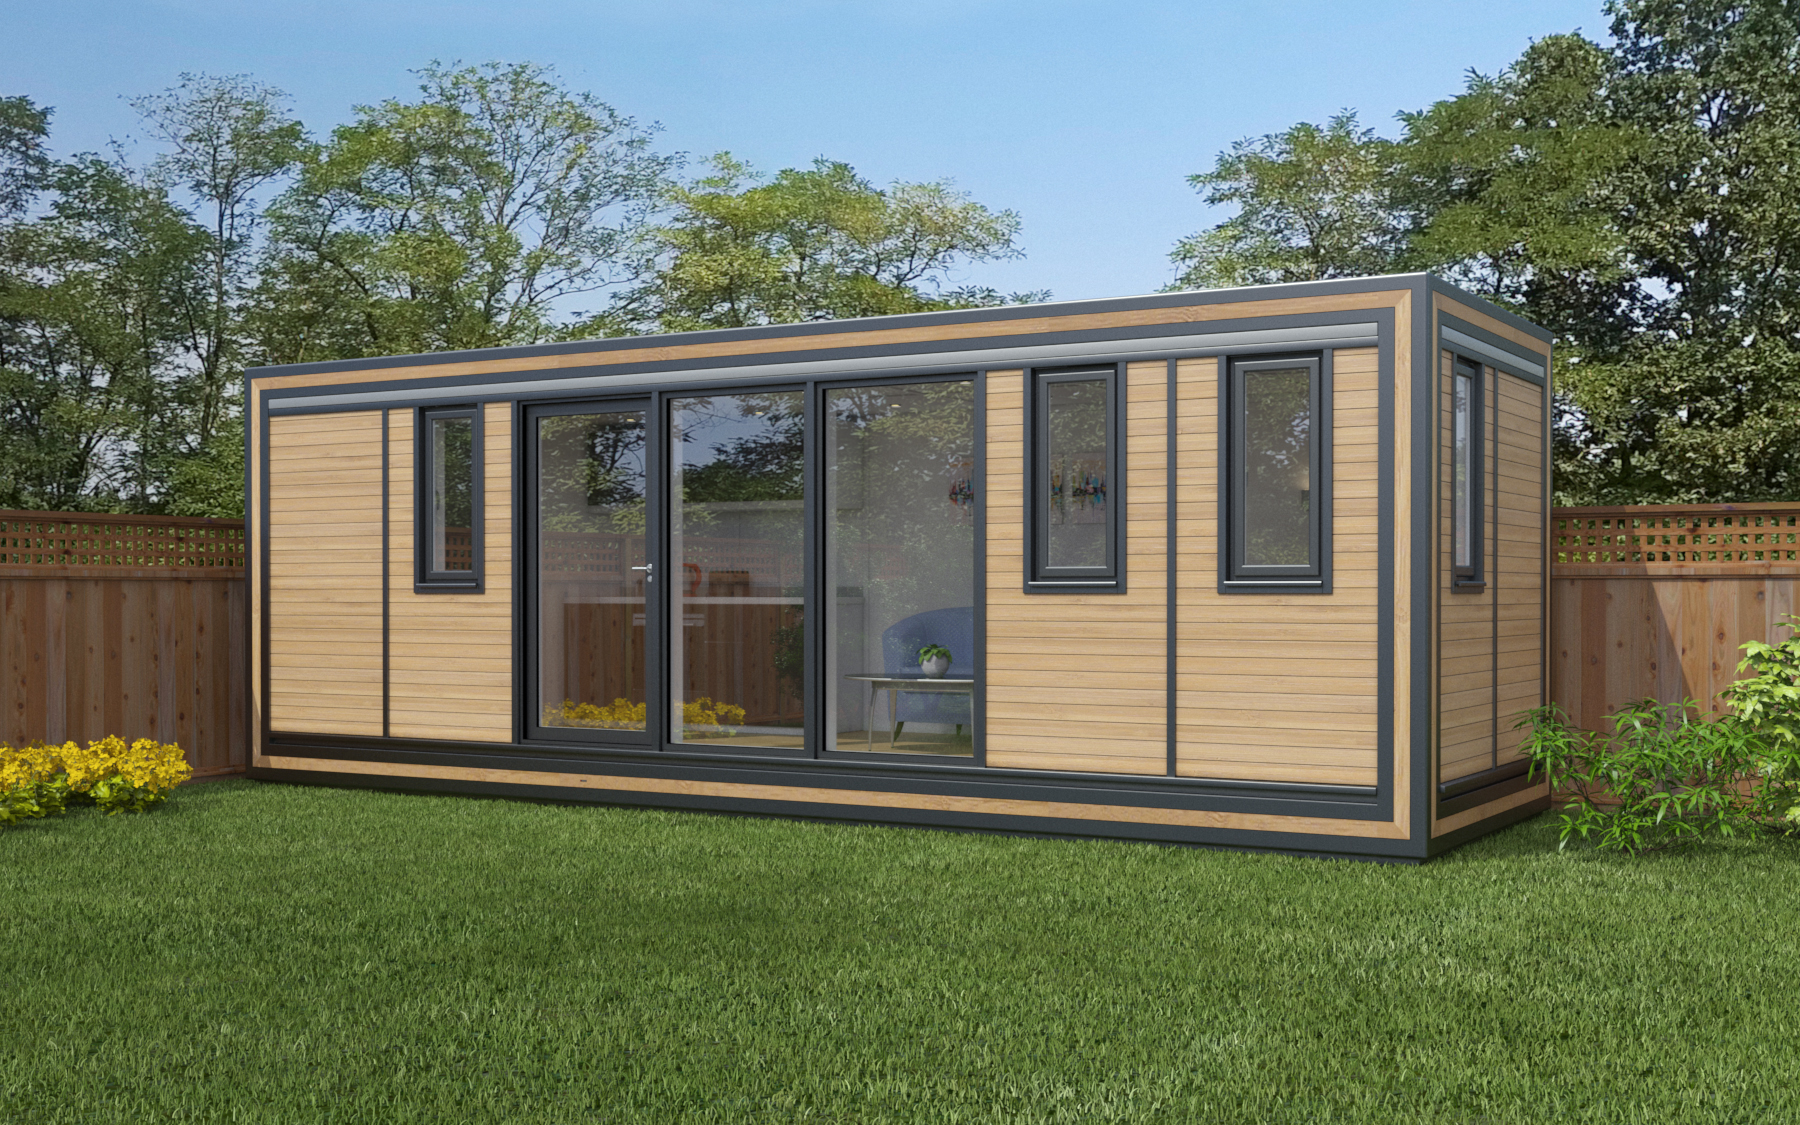 ZEDBOX 720  (7 x 2)  Internal Size: 7472 x 2117  External Size: 7942 x 2587  Bed Options: Single or Double  Kitchen Option: Micro or Premier  Wet Room Options: Yes  Portico: No  Price:  £30,000    Optional Extras    Request Zedbox Catalogue